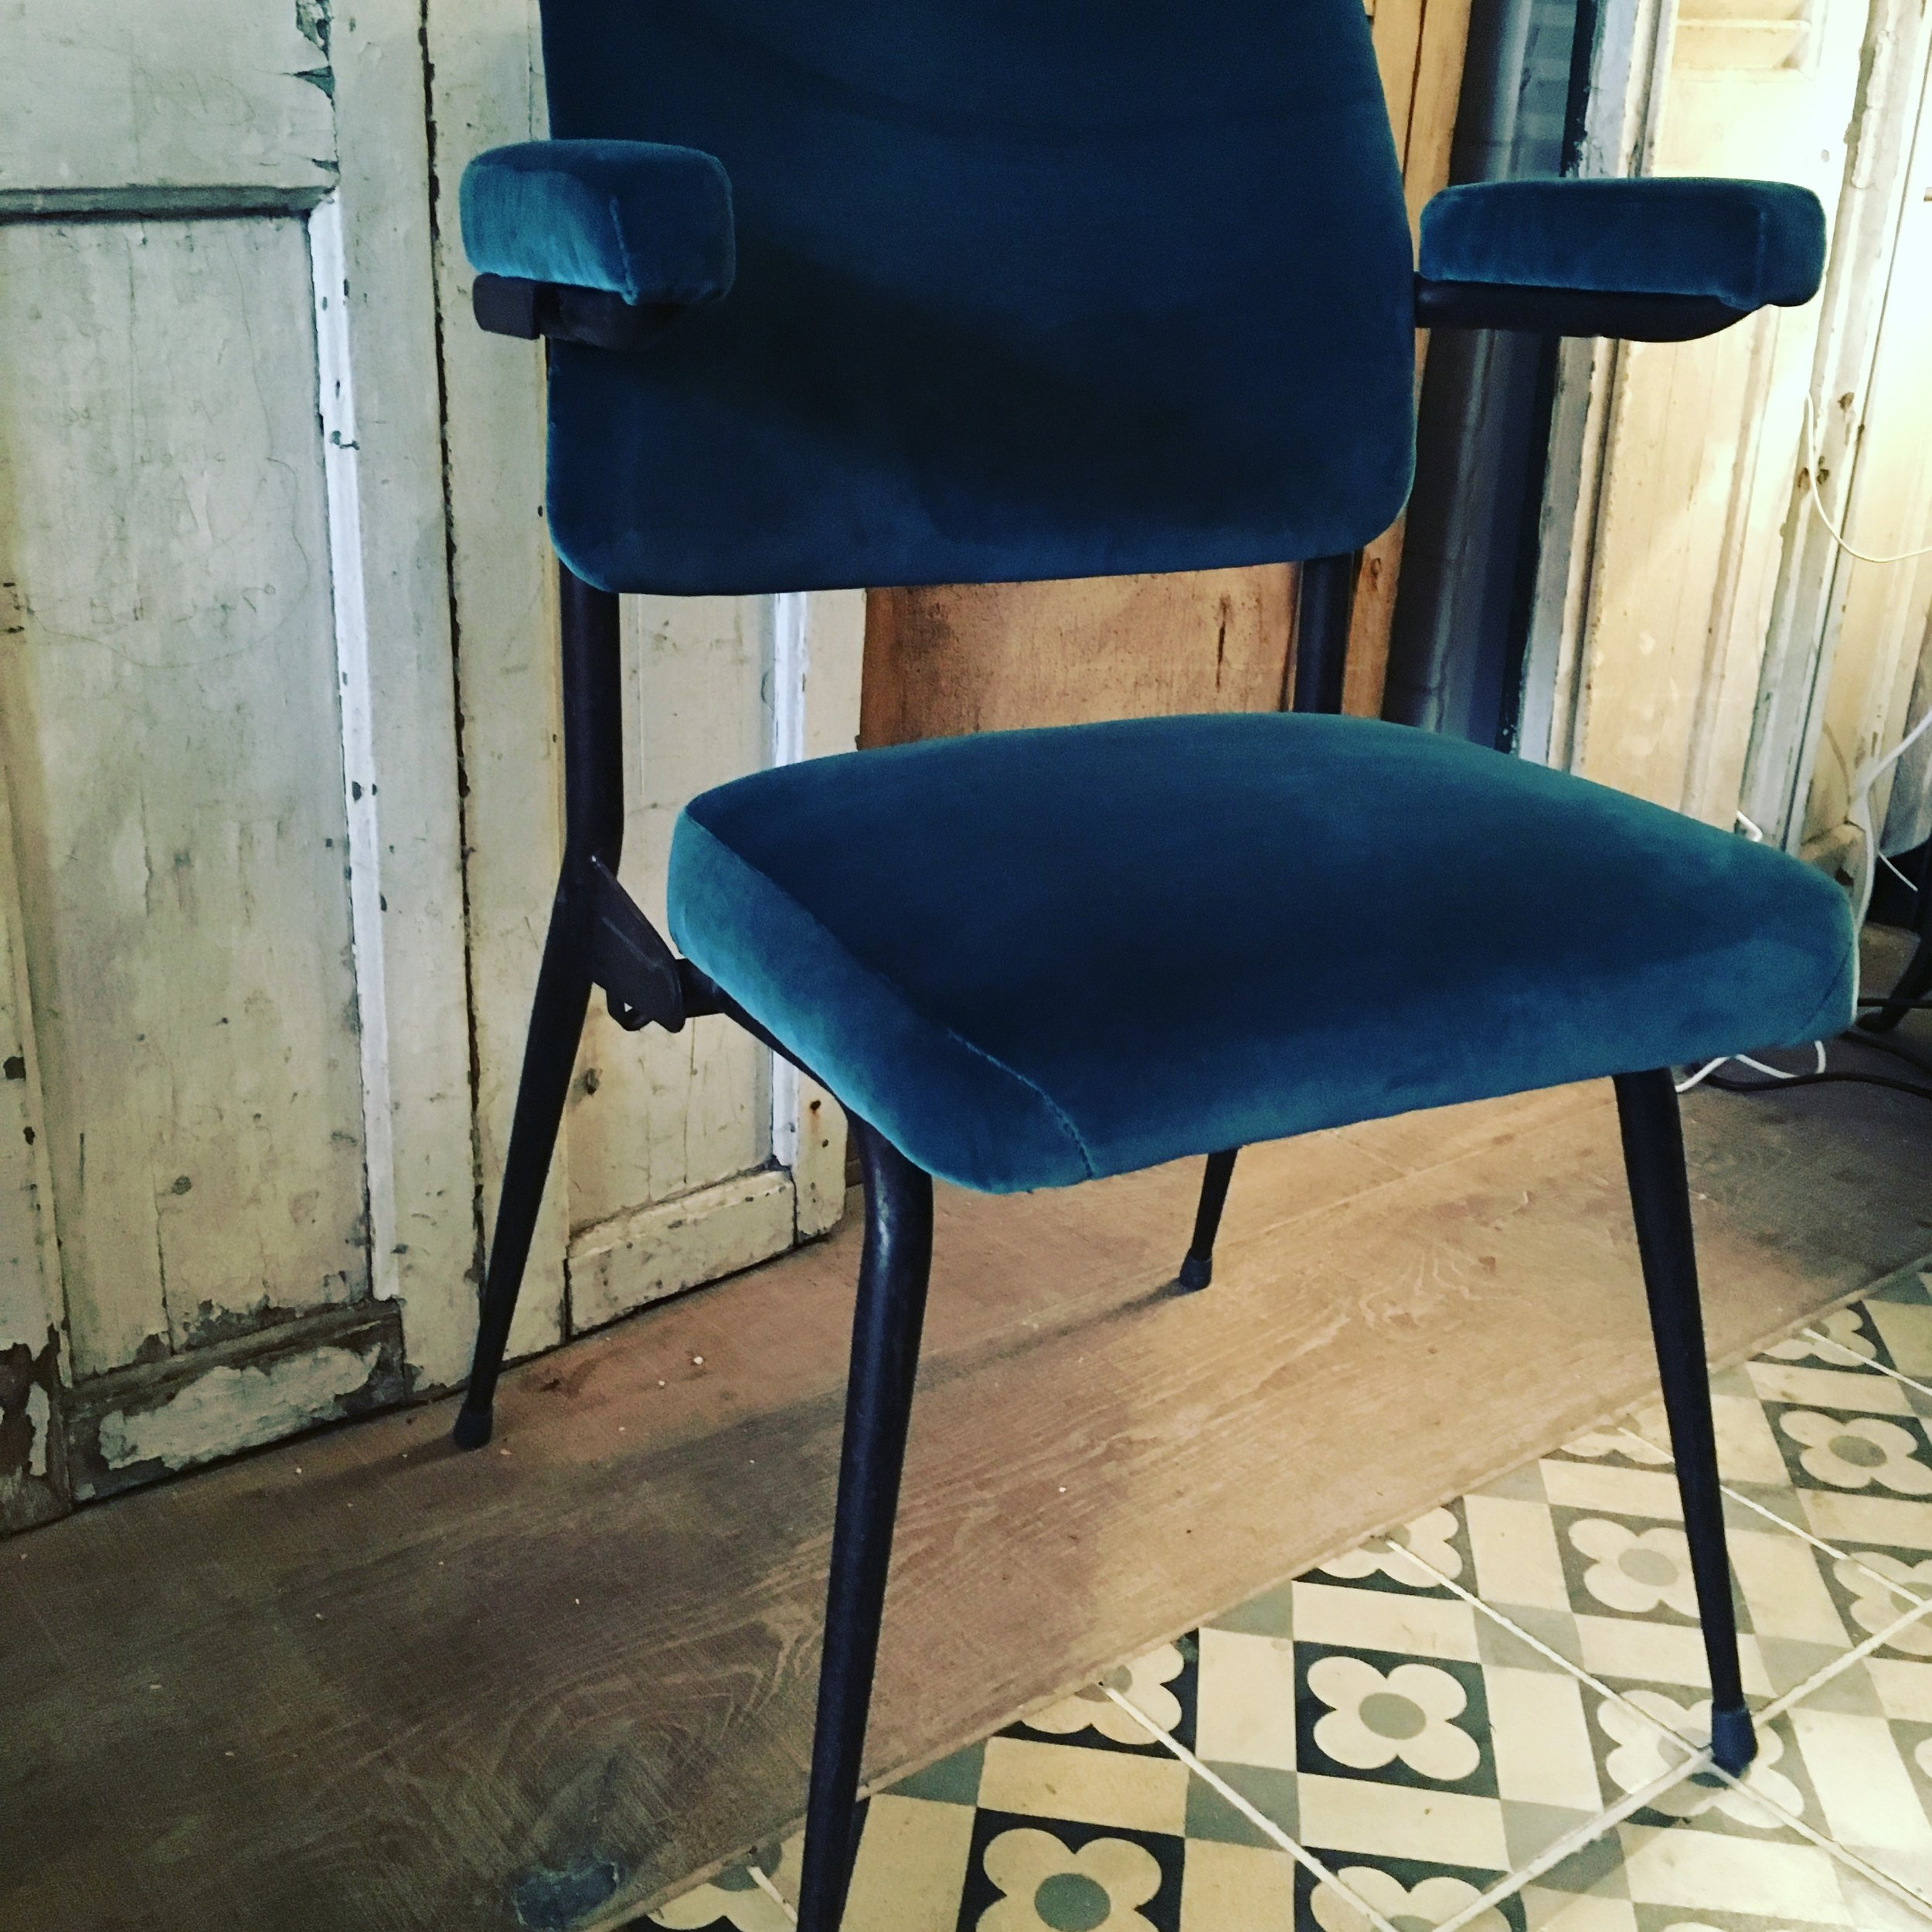 Refurbished Chairs 1950 S Cinema Chairs Revived